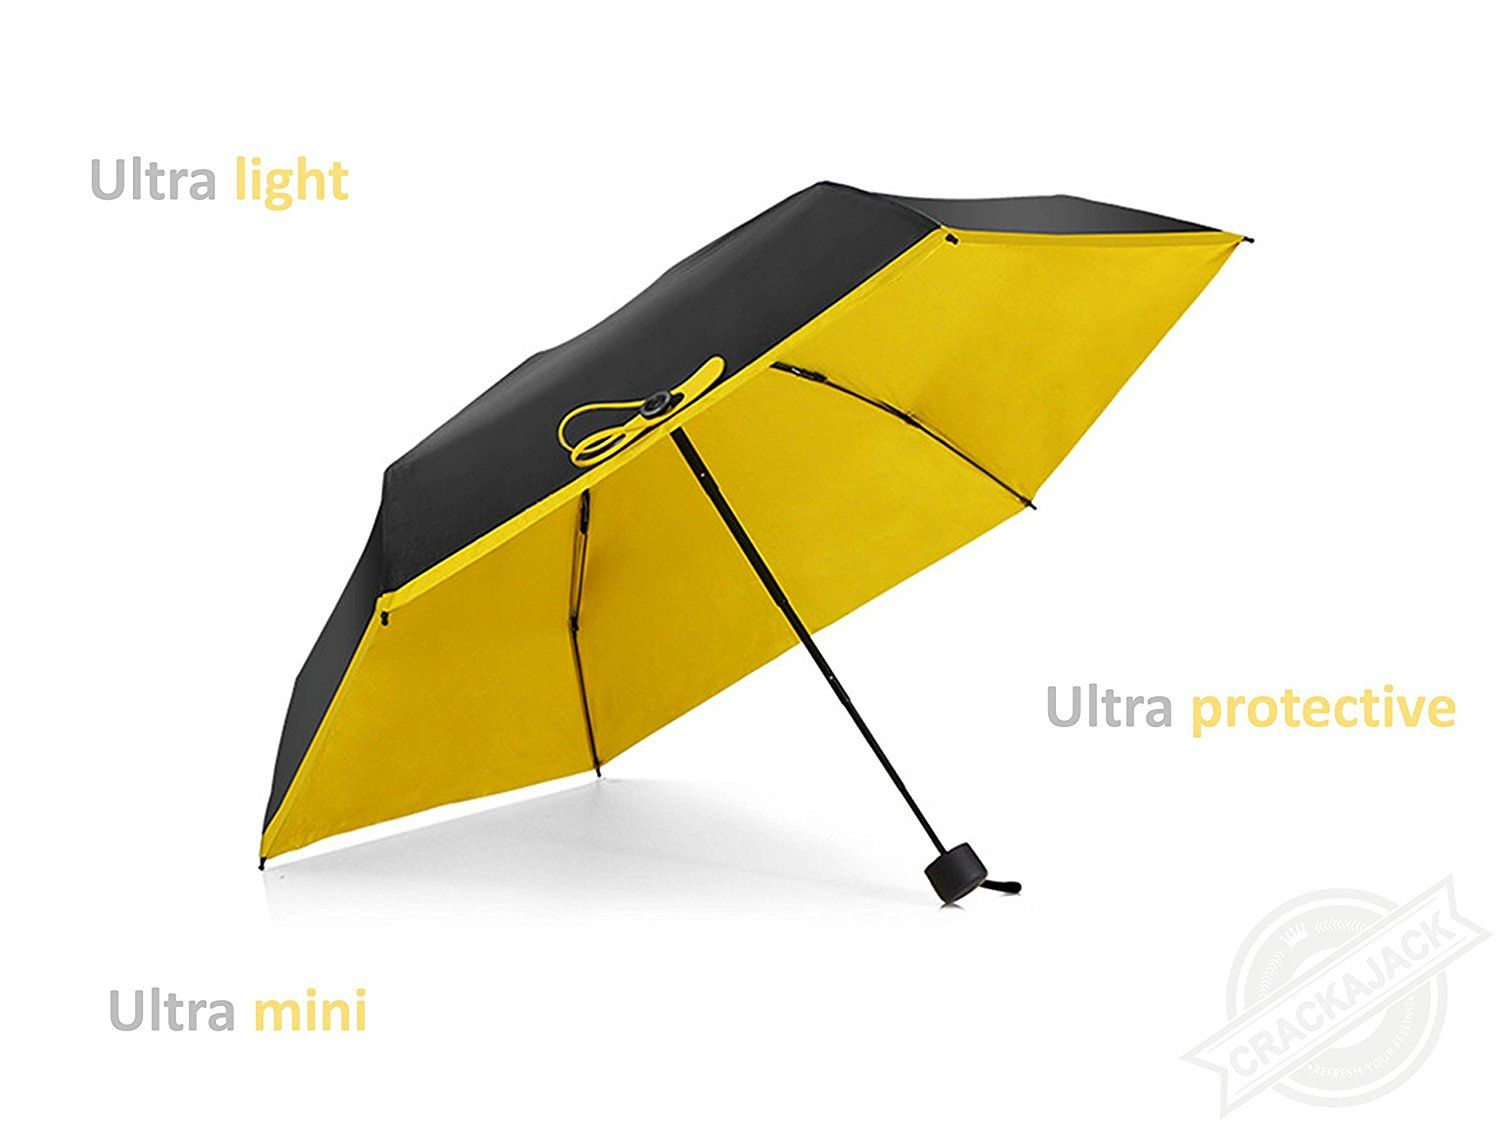 b6dbe53e614a 21 Brilliantly Useful Products On Amazon Right Now | Umbrellas | Uv ...